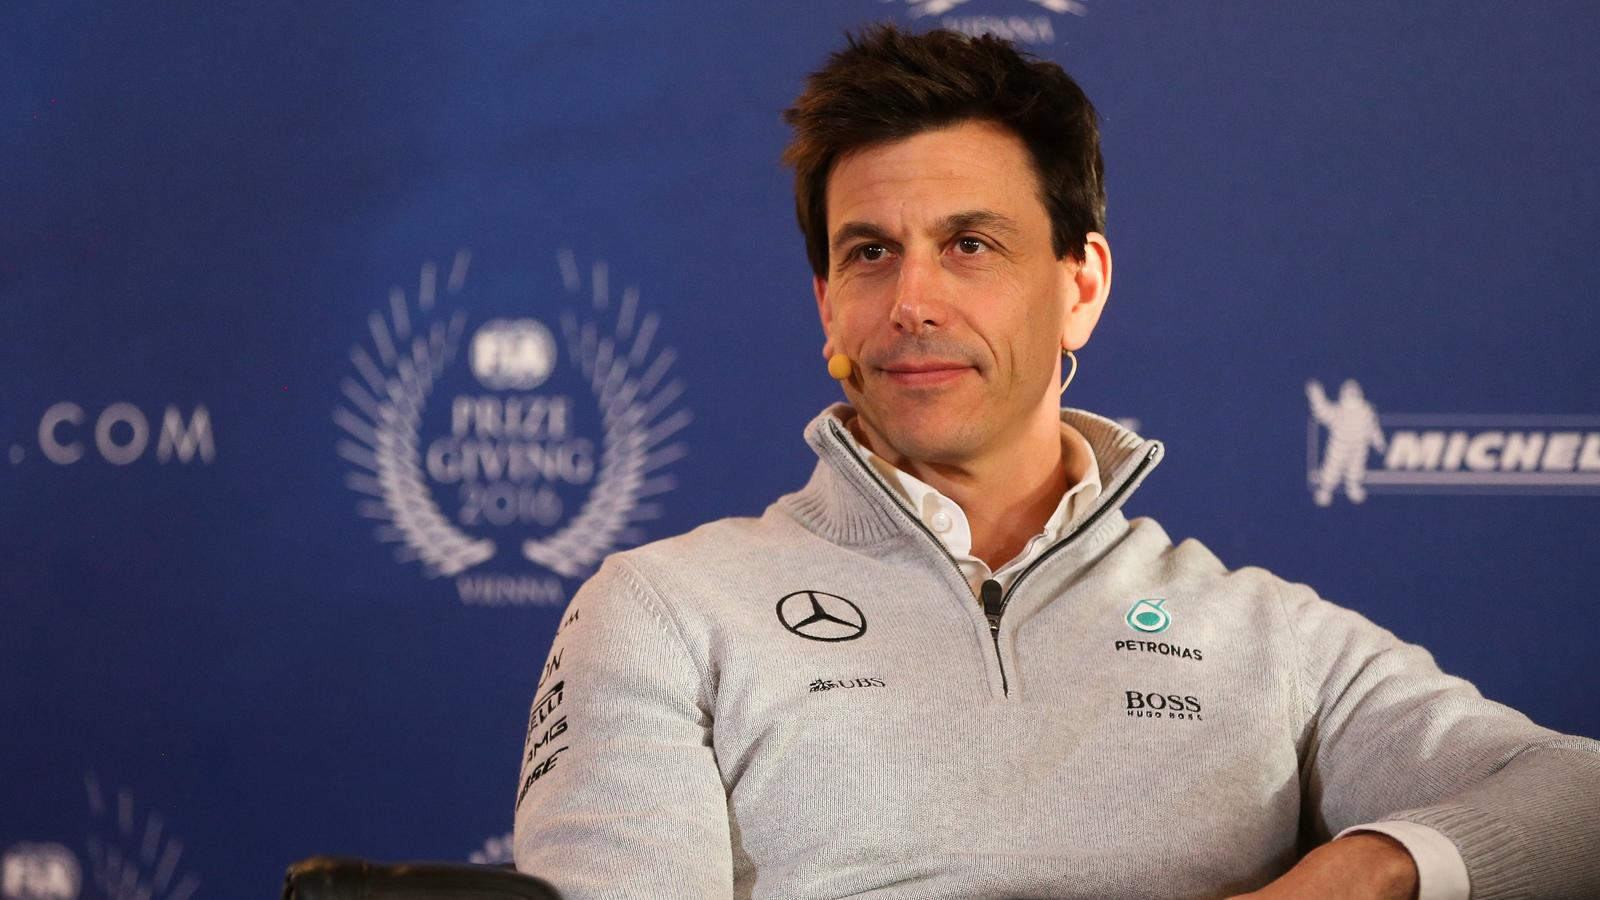 MOTORSPORTS - FIA Motorsports day VIENNA,AUSTRIA,02.DEC.16 - MOTORSPORTS - FIA, Motorsports day, press conference PK Pressekonferenz Image shows executive director Toto Wolff (Mercedes GP). PUBLICATIONxINxGERxHUNxONLY GEPAxpictures/xPhilippxBremMotor